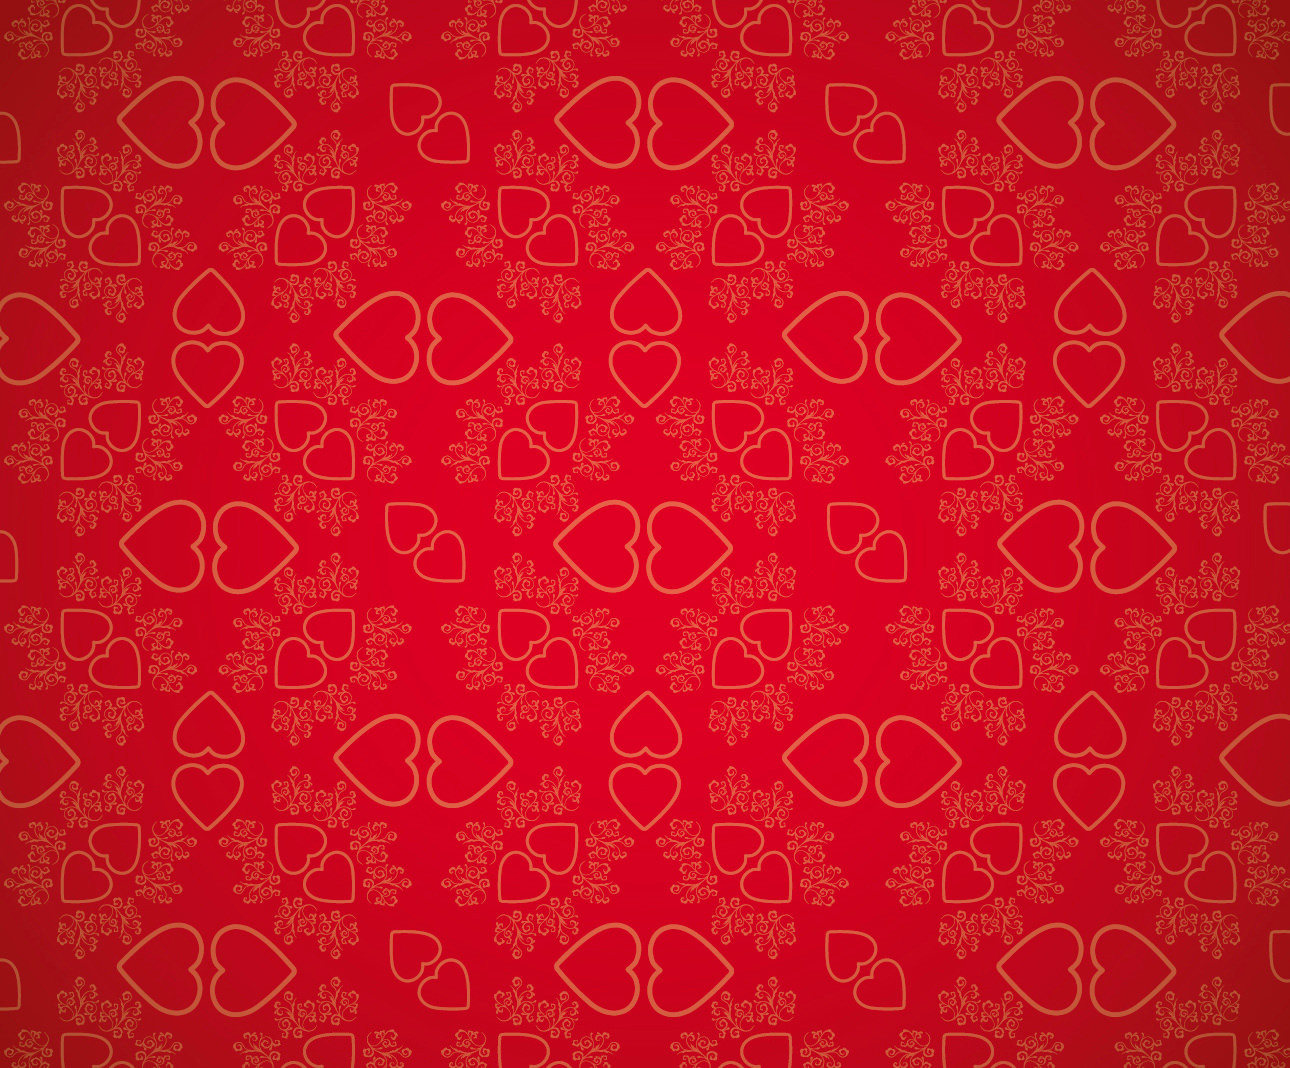 Red Heart Patterns Luxury 15 Red Floral Patterns Flowers Patterns Of Contemporary 46 Ideas Red Heart Patterns